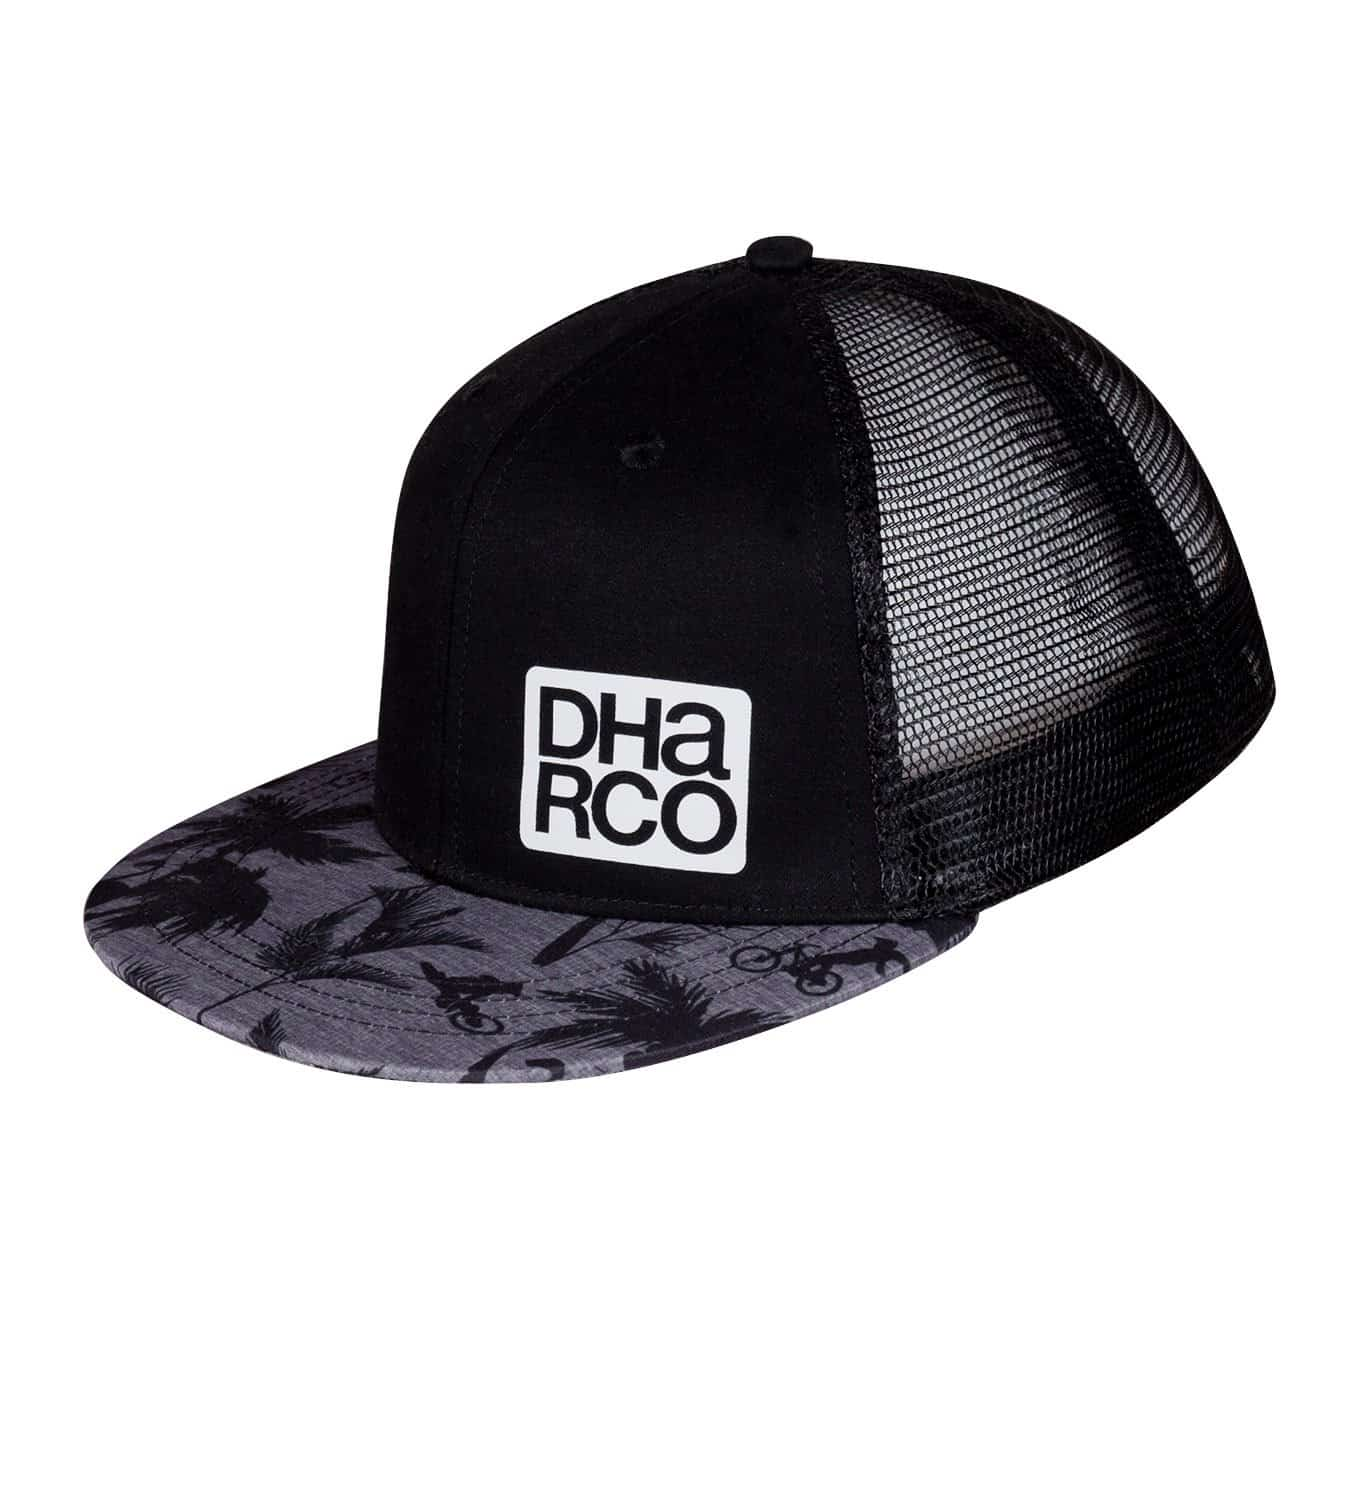 DHaRCO Flat Brim Trucker Cap - Party Stealth